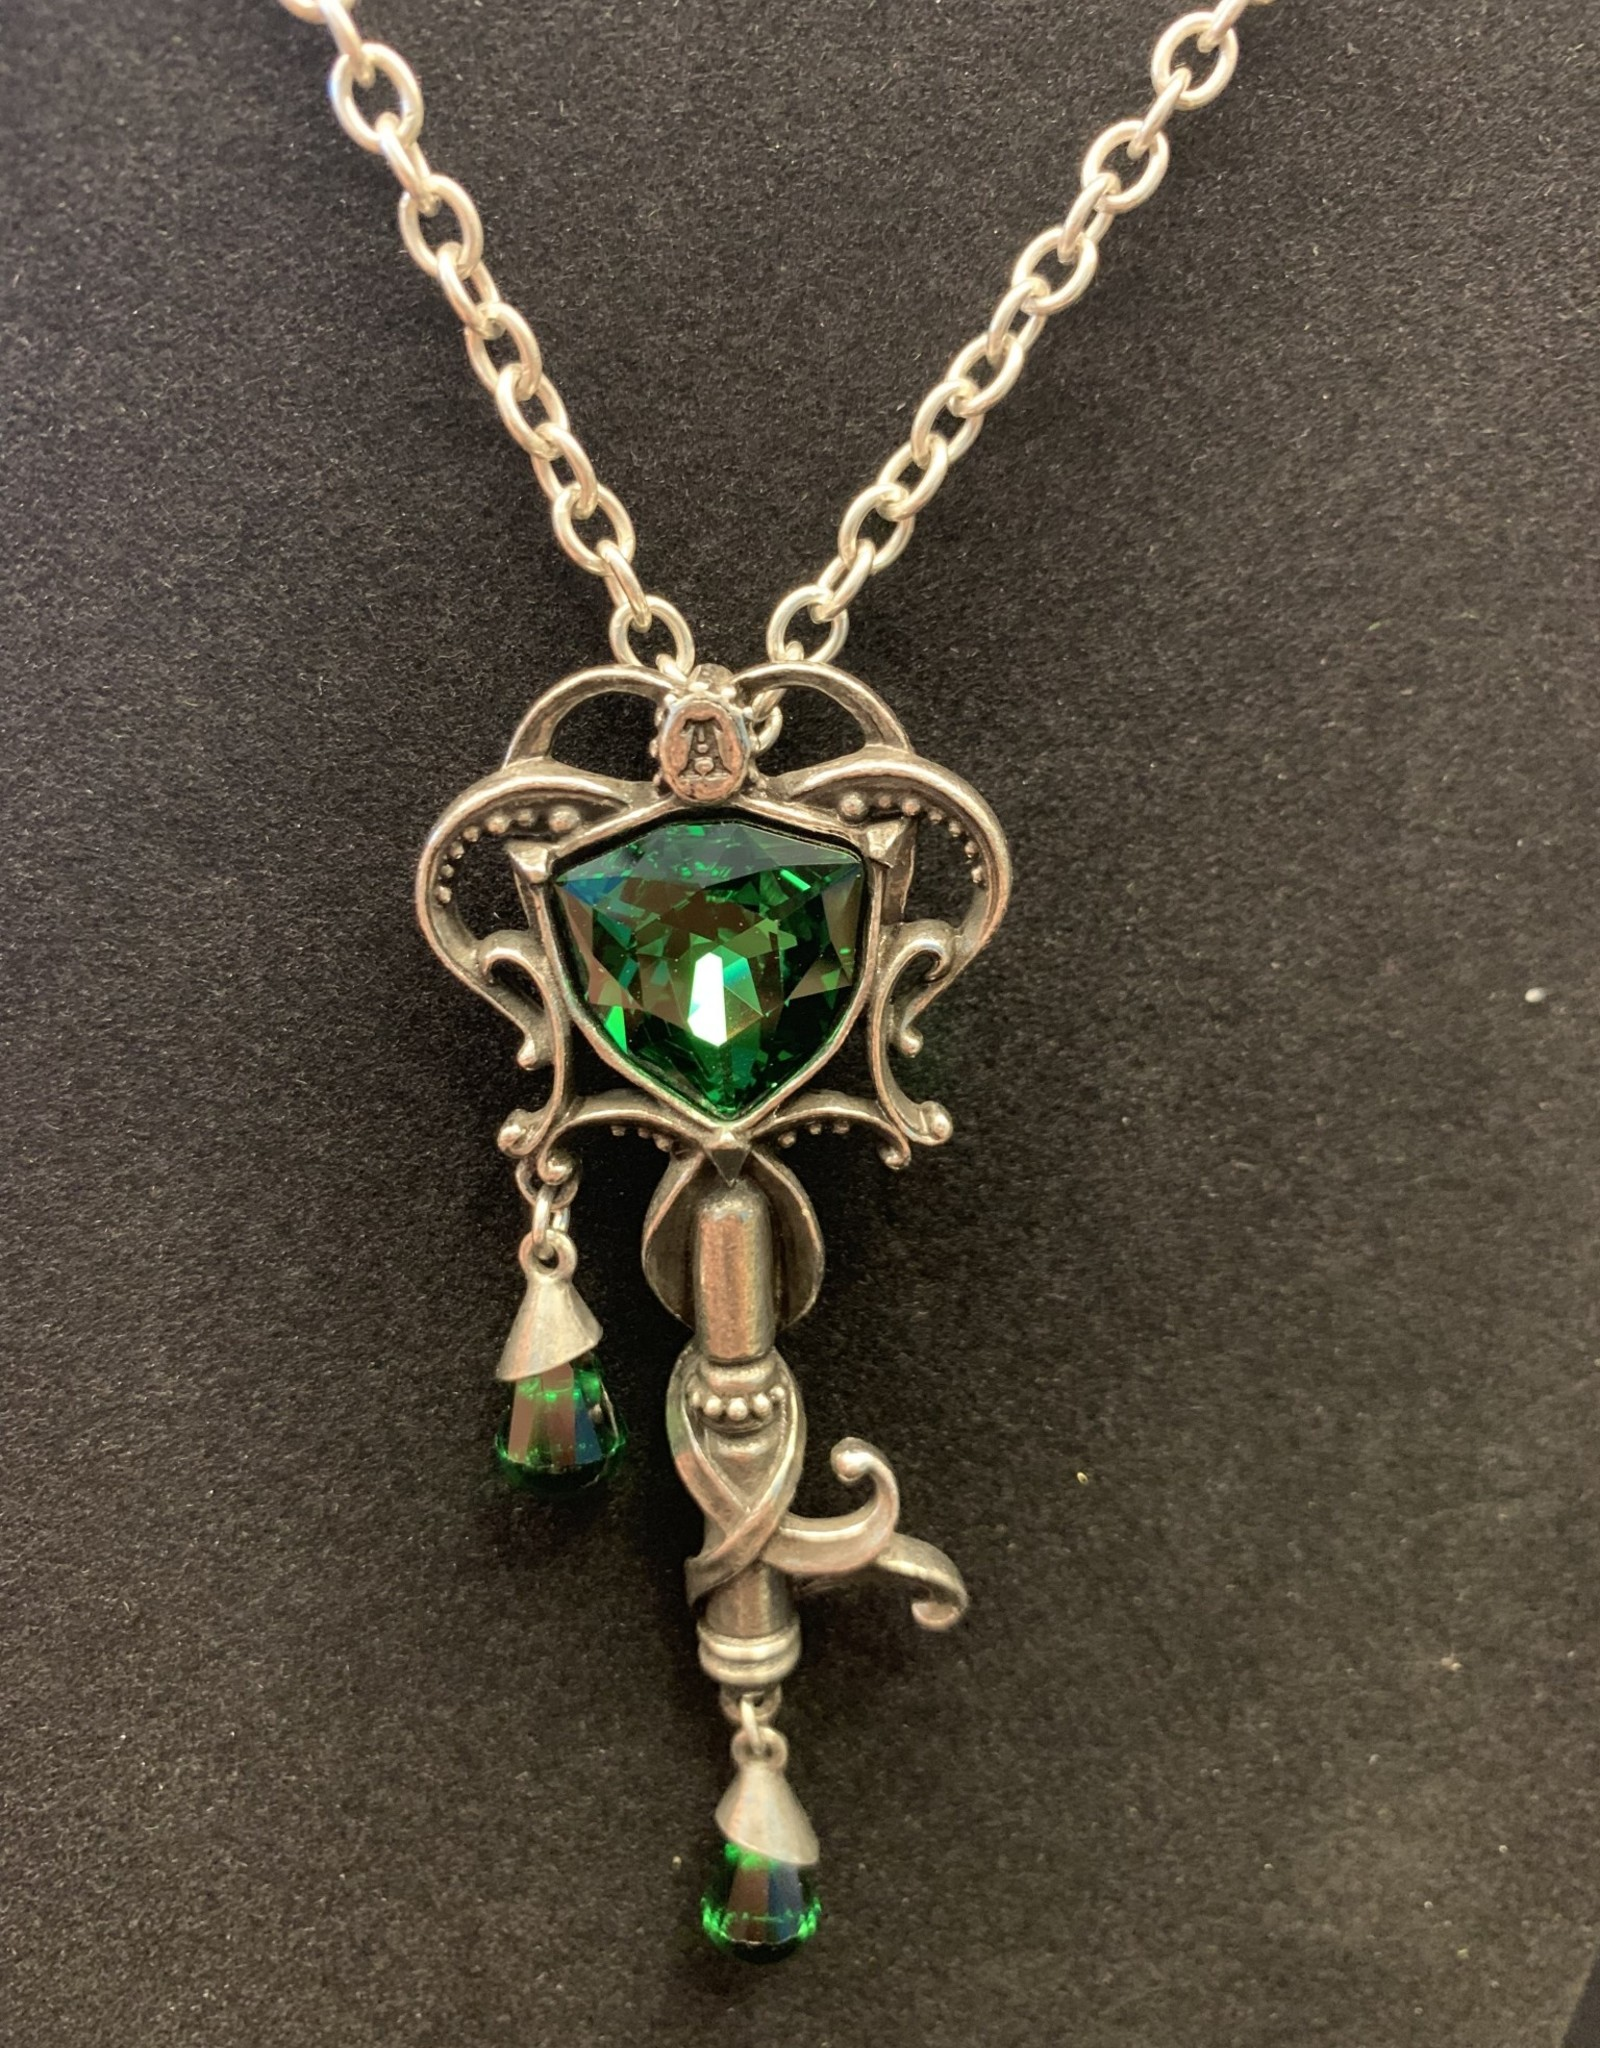 Key to the Secret Garden Necklace